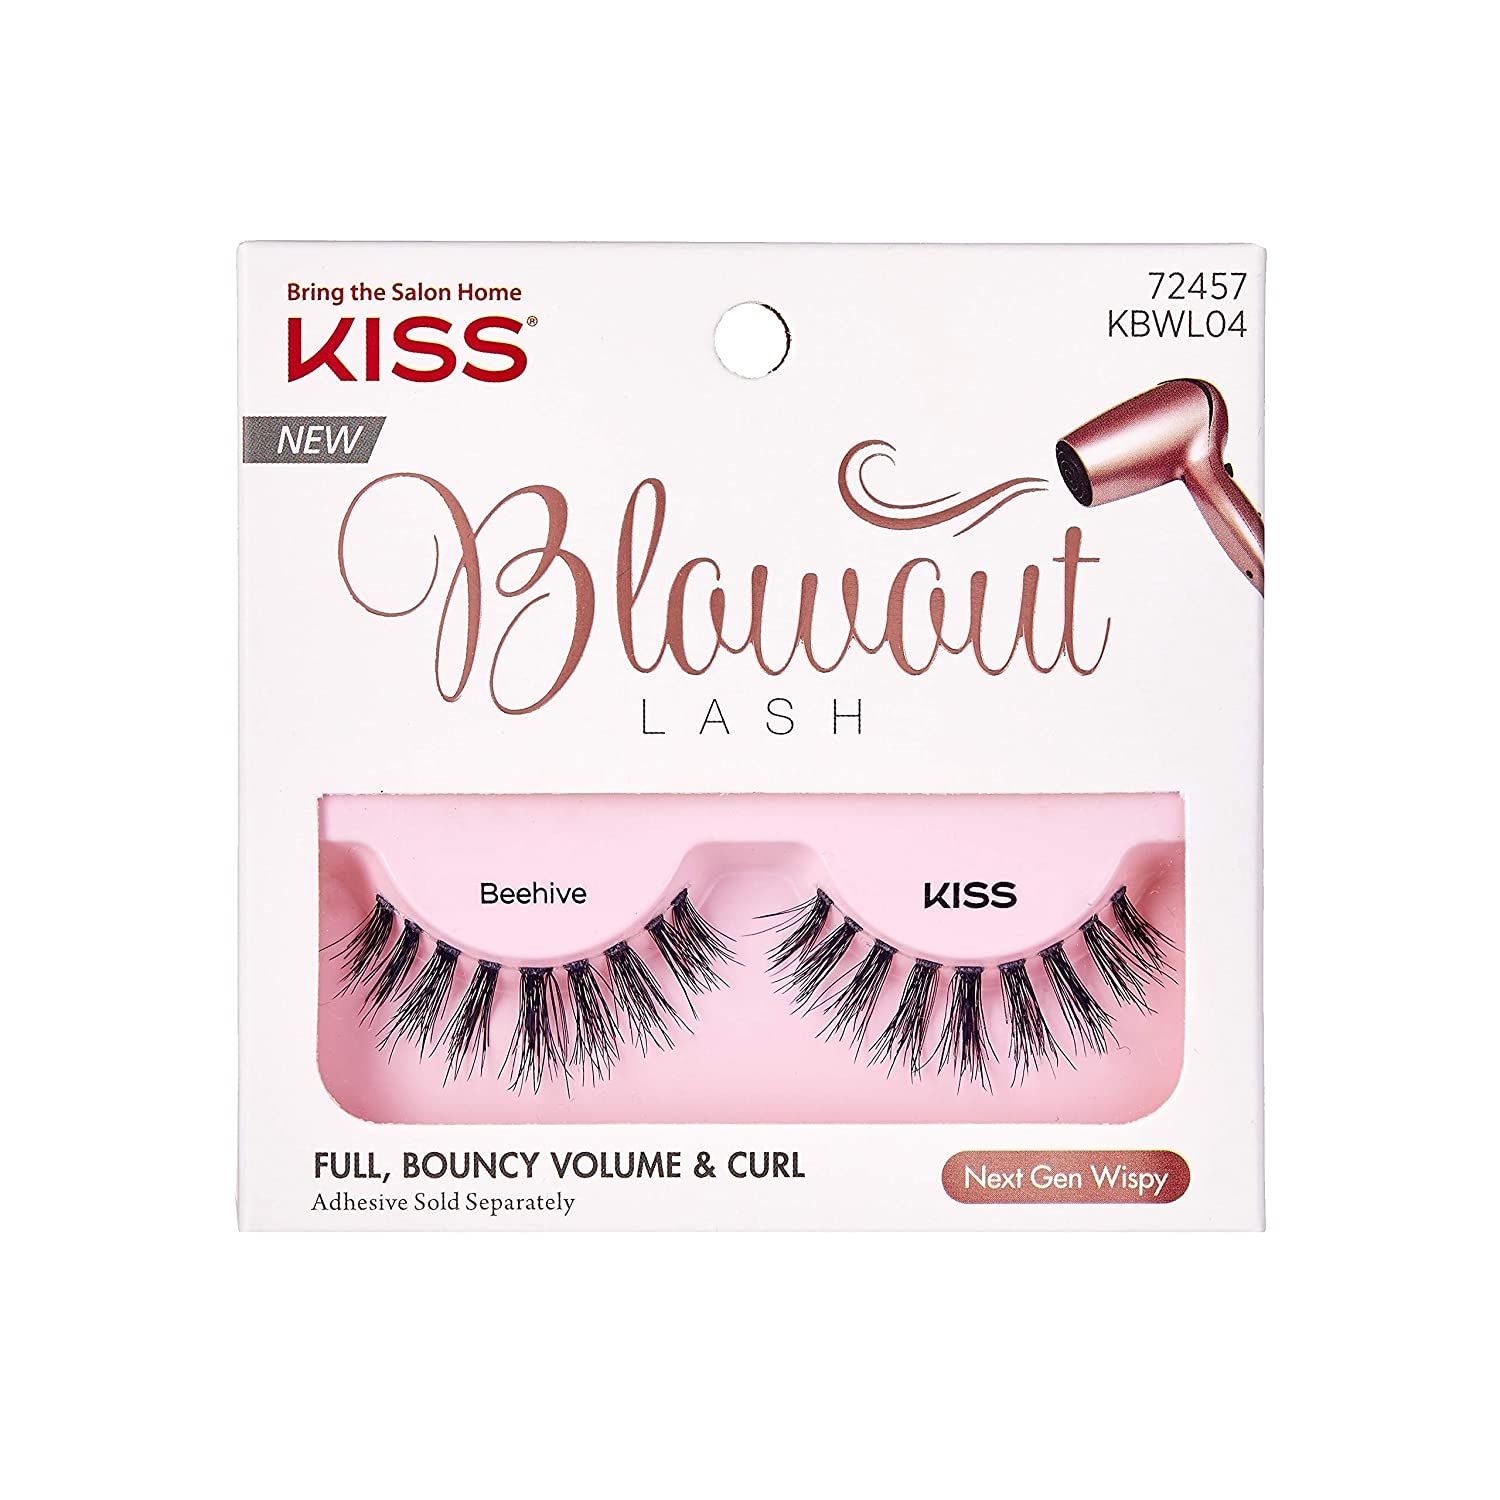 32faefd53af Kiss Lashes Kbwl04ca - Kiss Blowout Eyelashes - Beehive, 0.03 Pounds:  Amazon.ca: Beauty